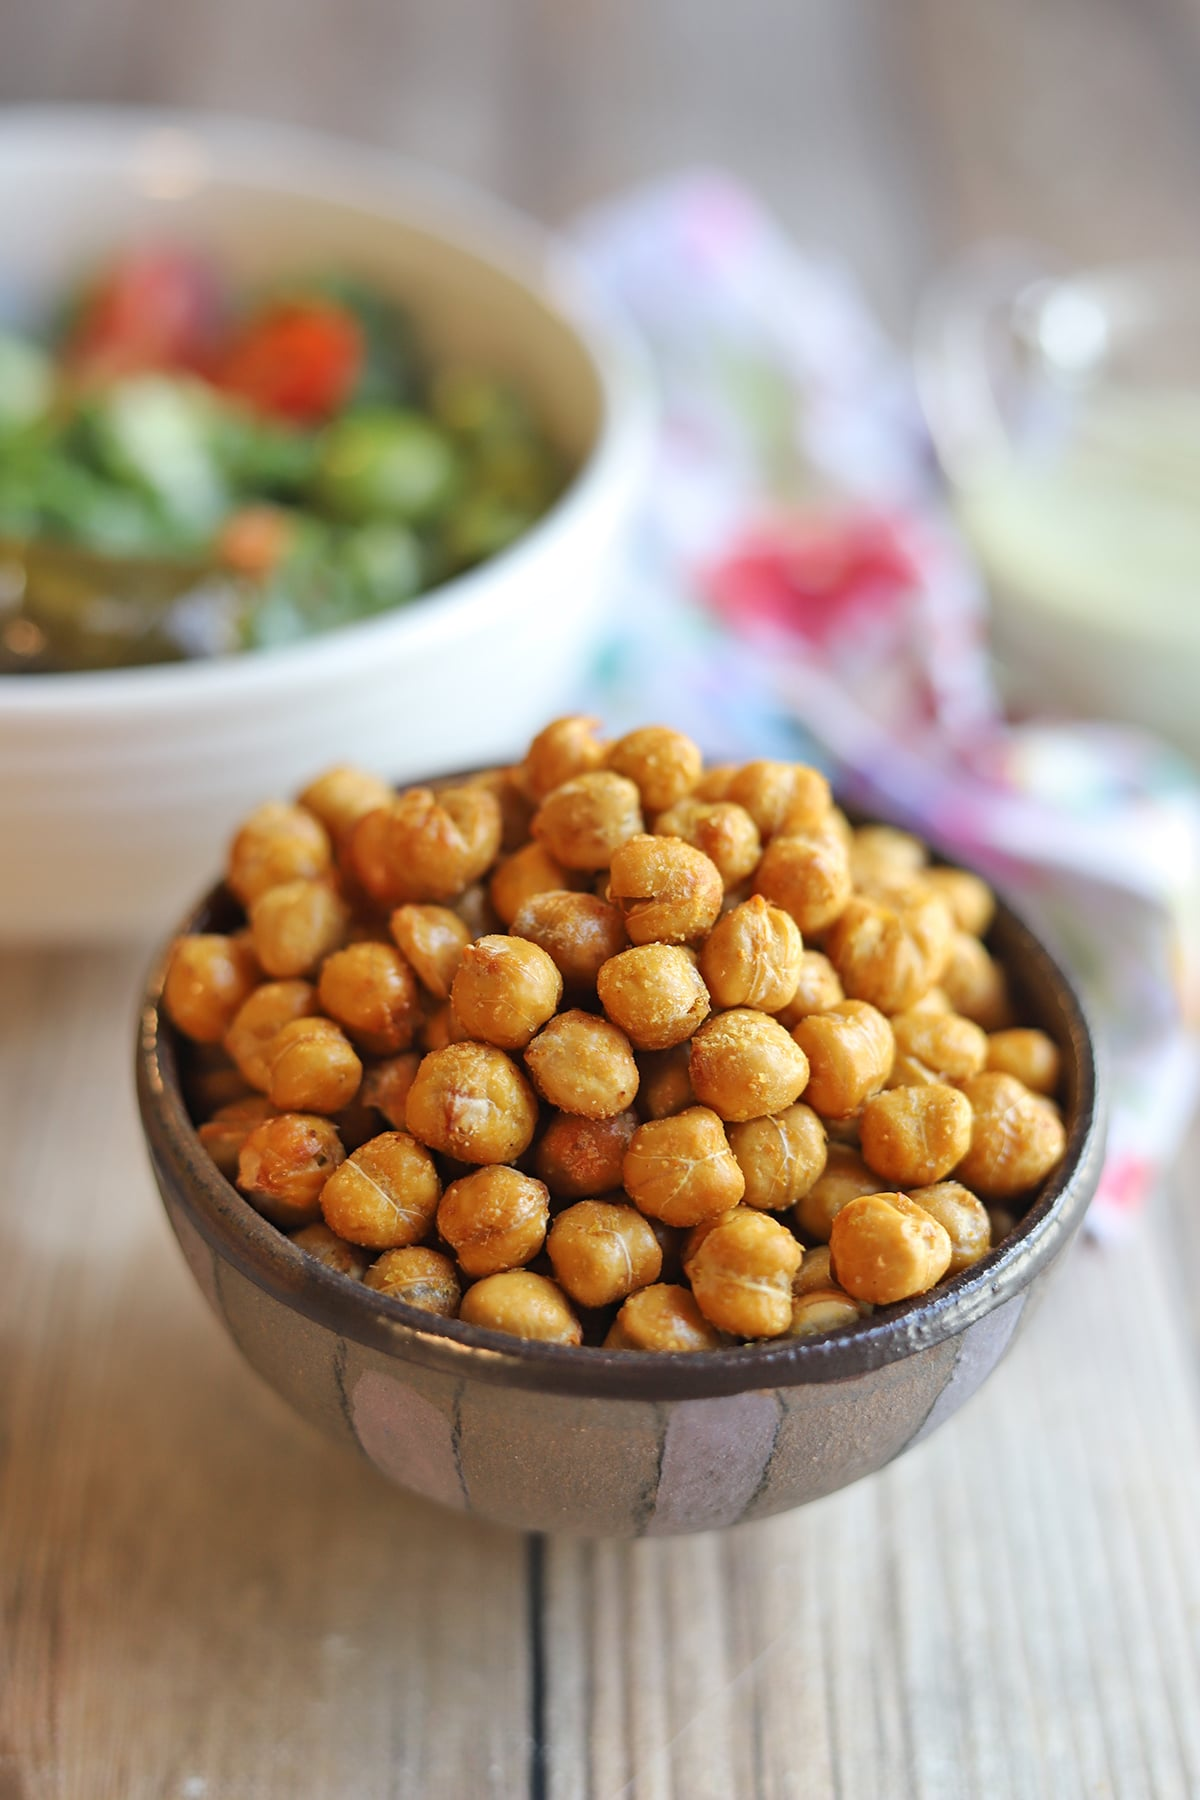 Fried chickpeas in bowl on table.